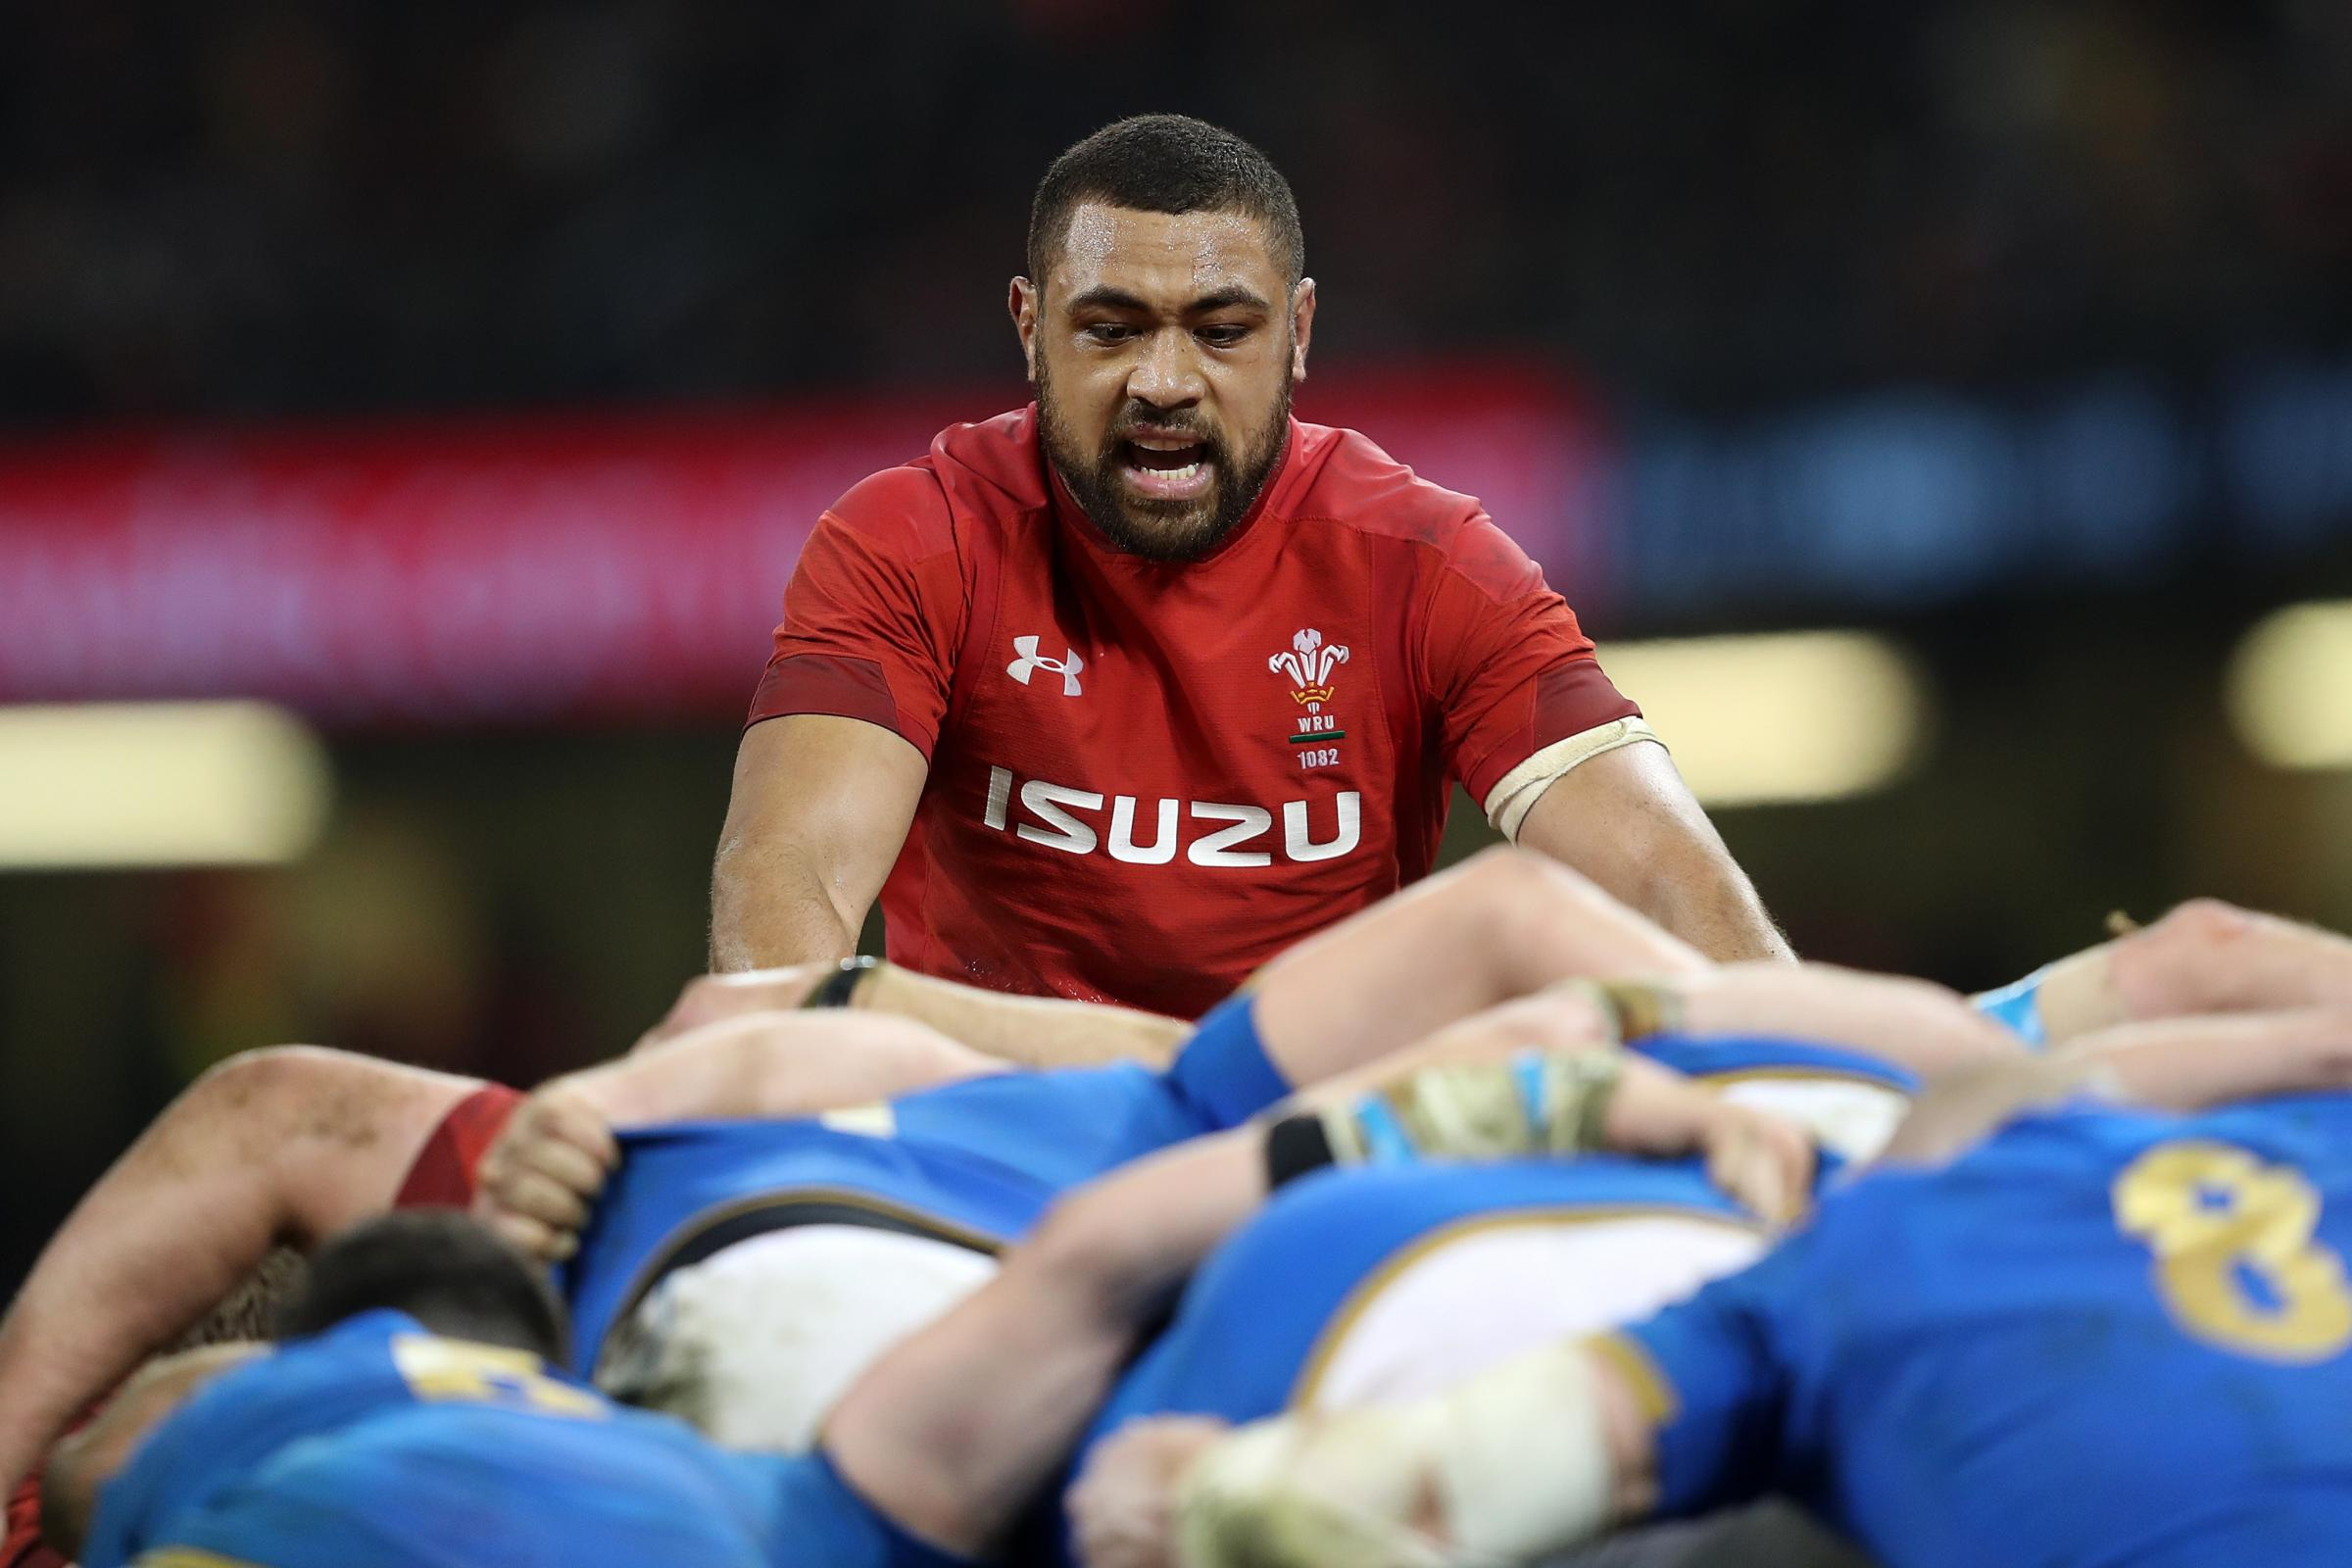 Taulupe Faletau will not feature in the Guinness Six Nations